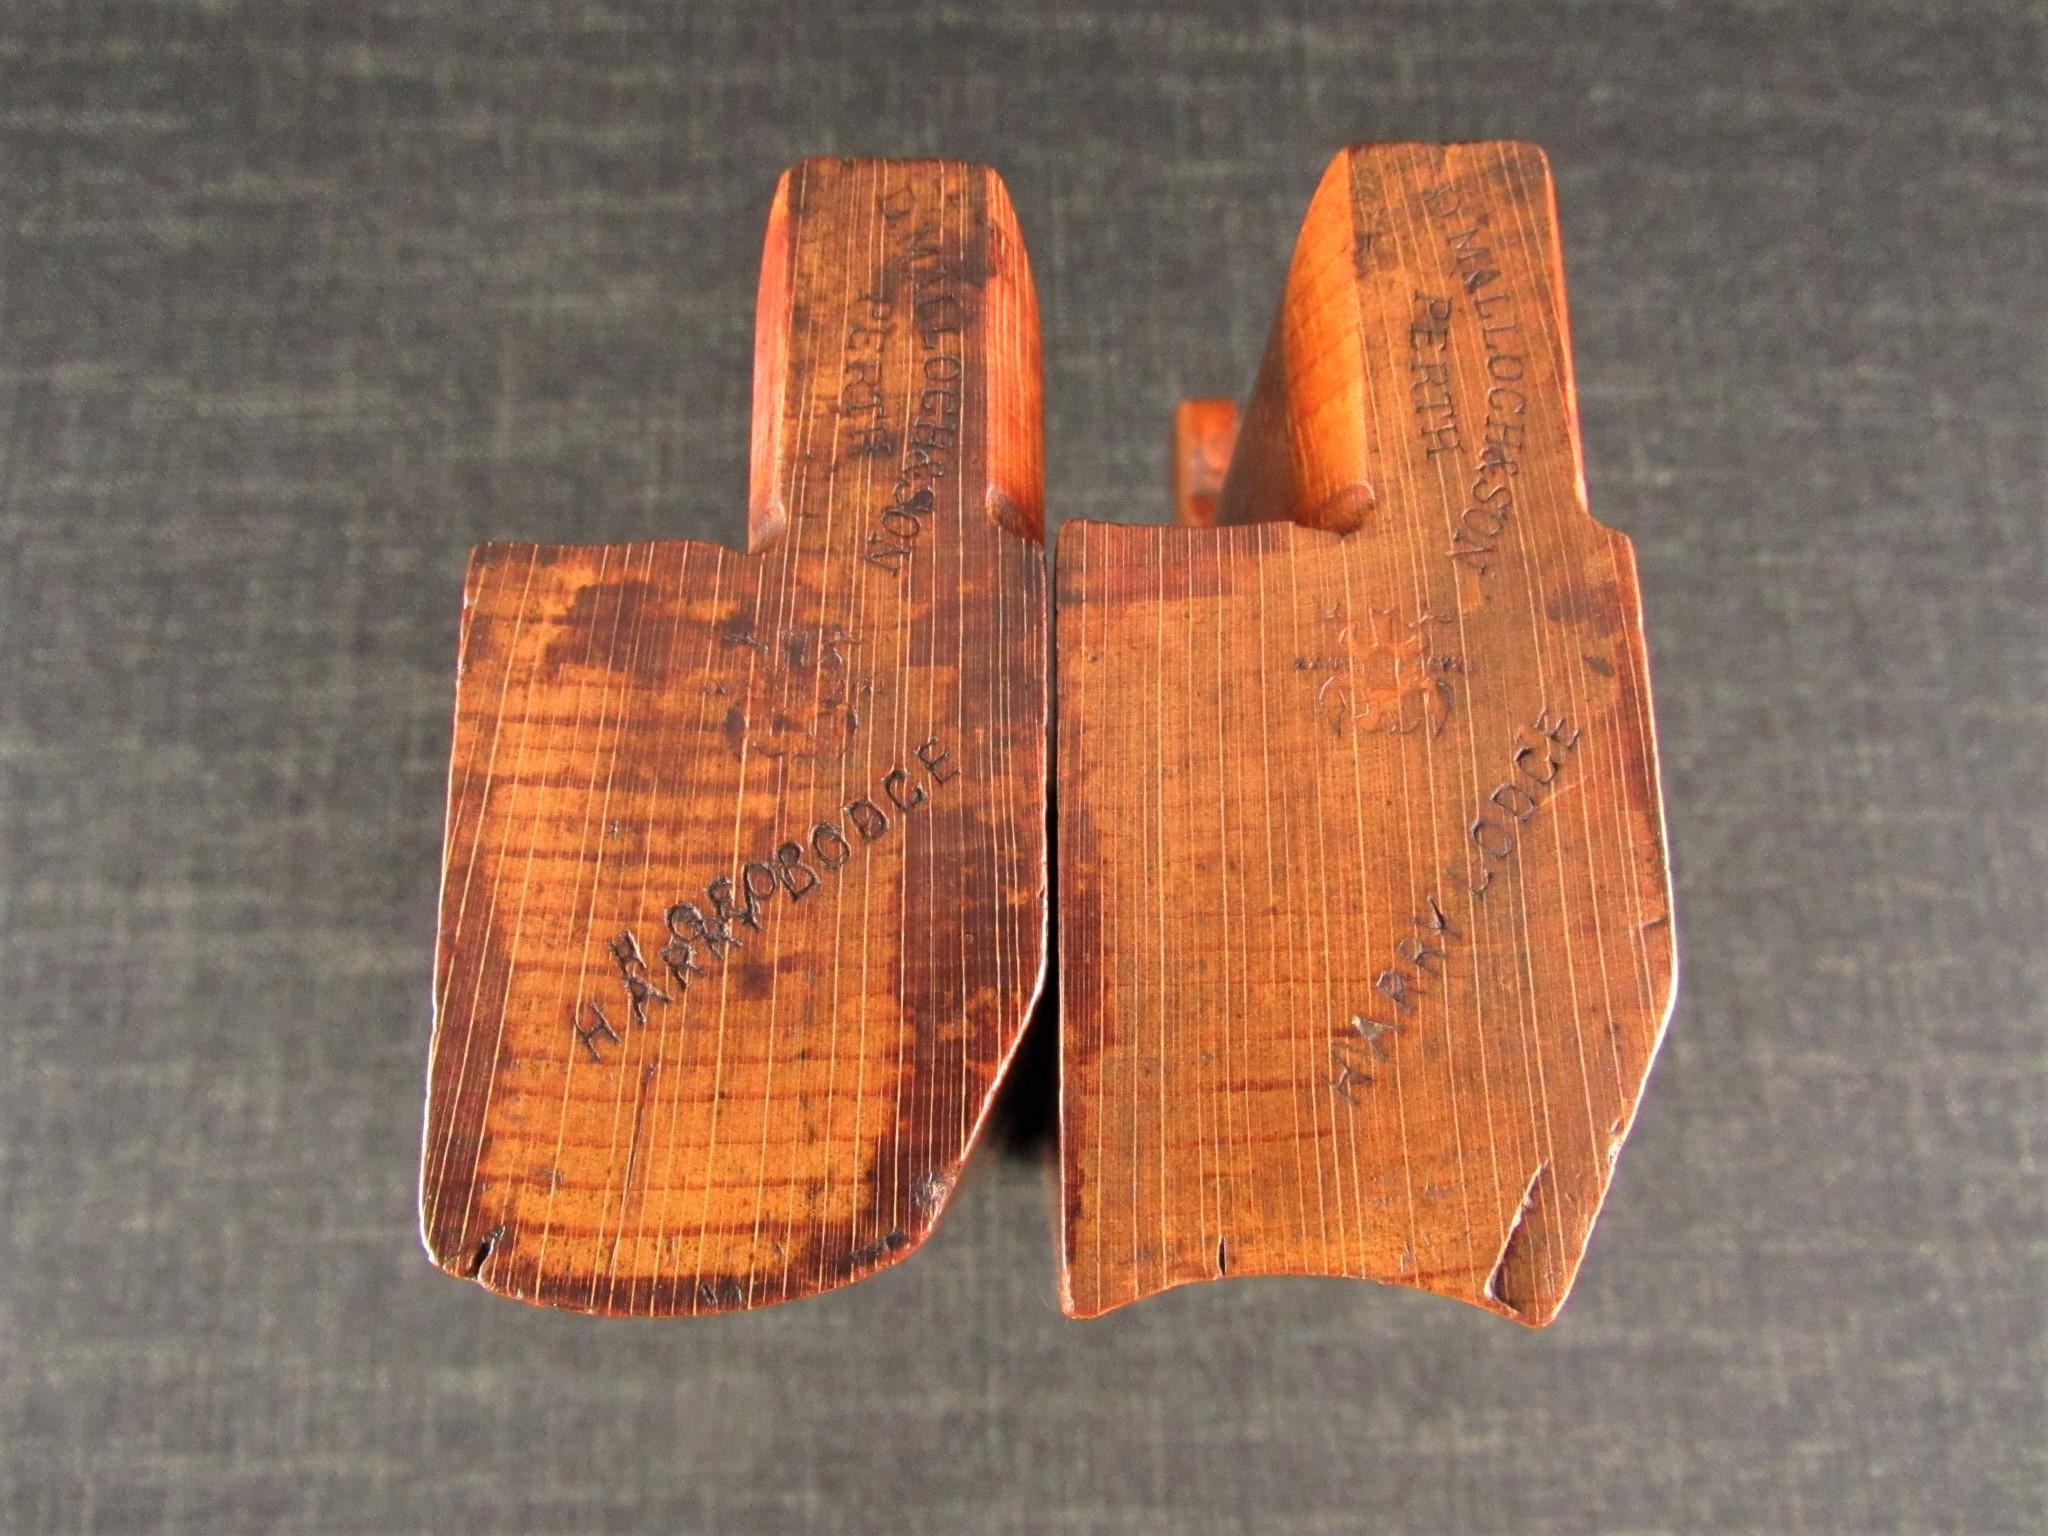 MALLOCH No.16 Cabinet Pitch Hollow & Round Moulding Planes